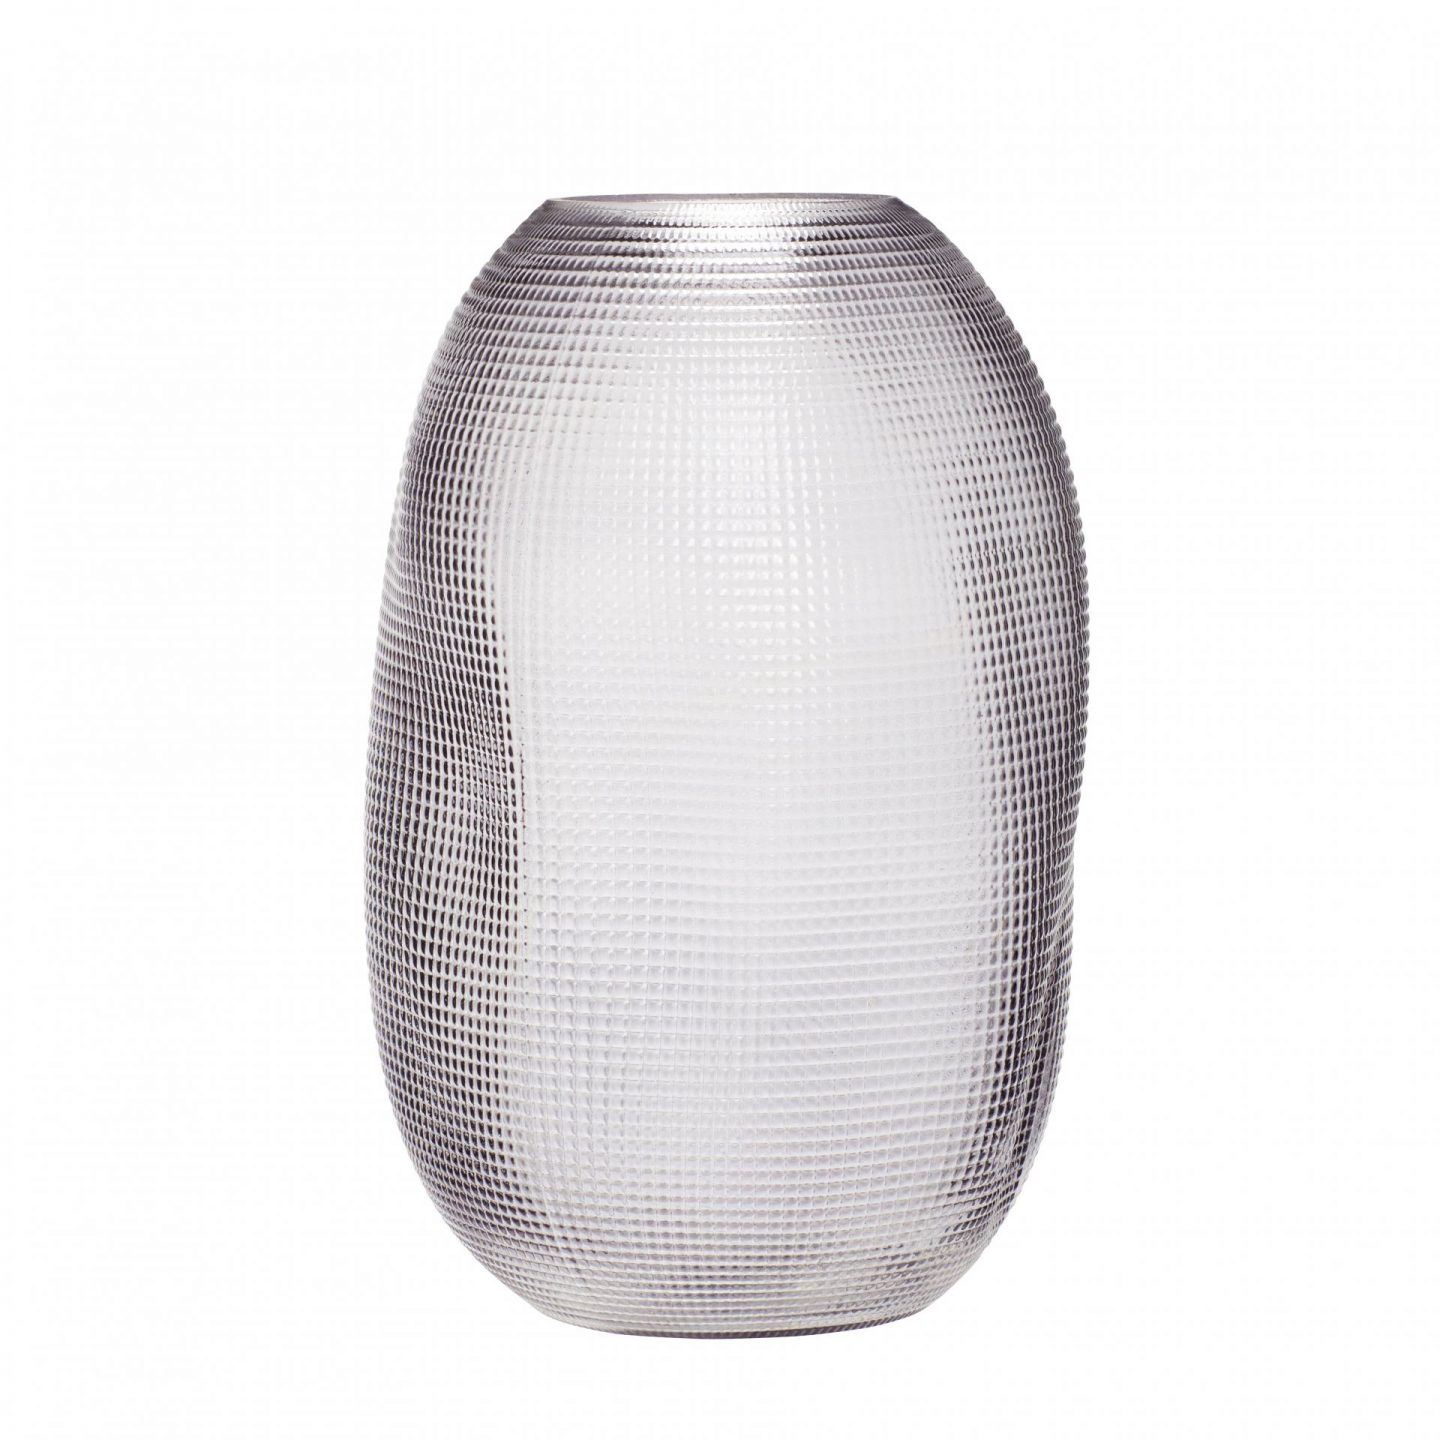 Textured glass vase from Cox and Cox.